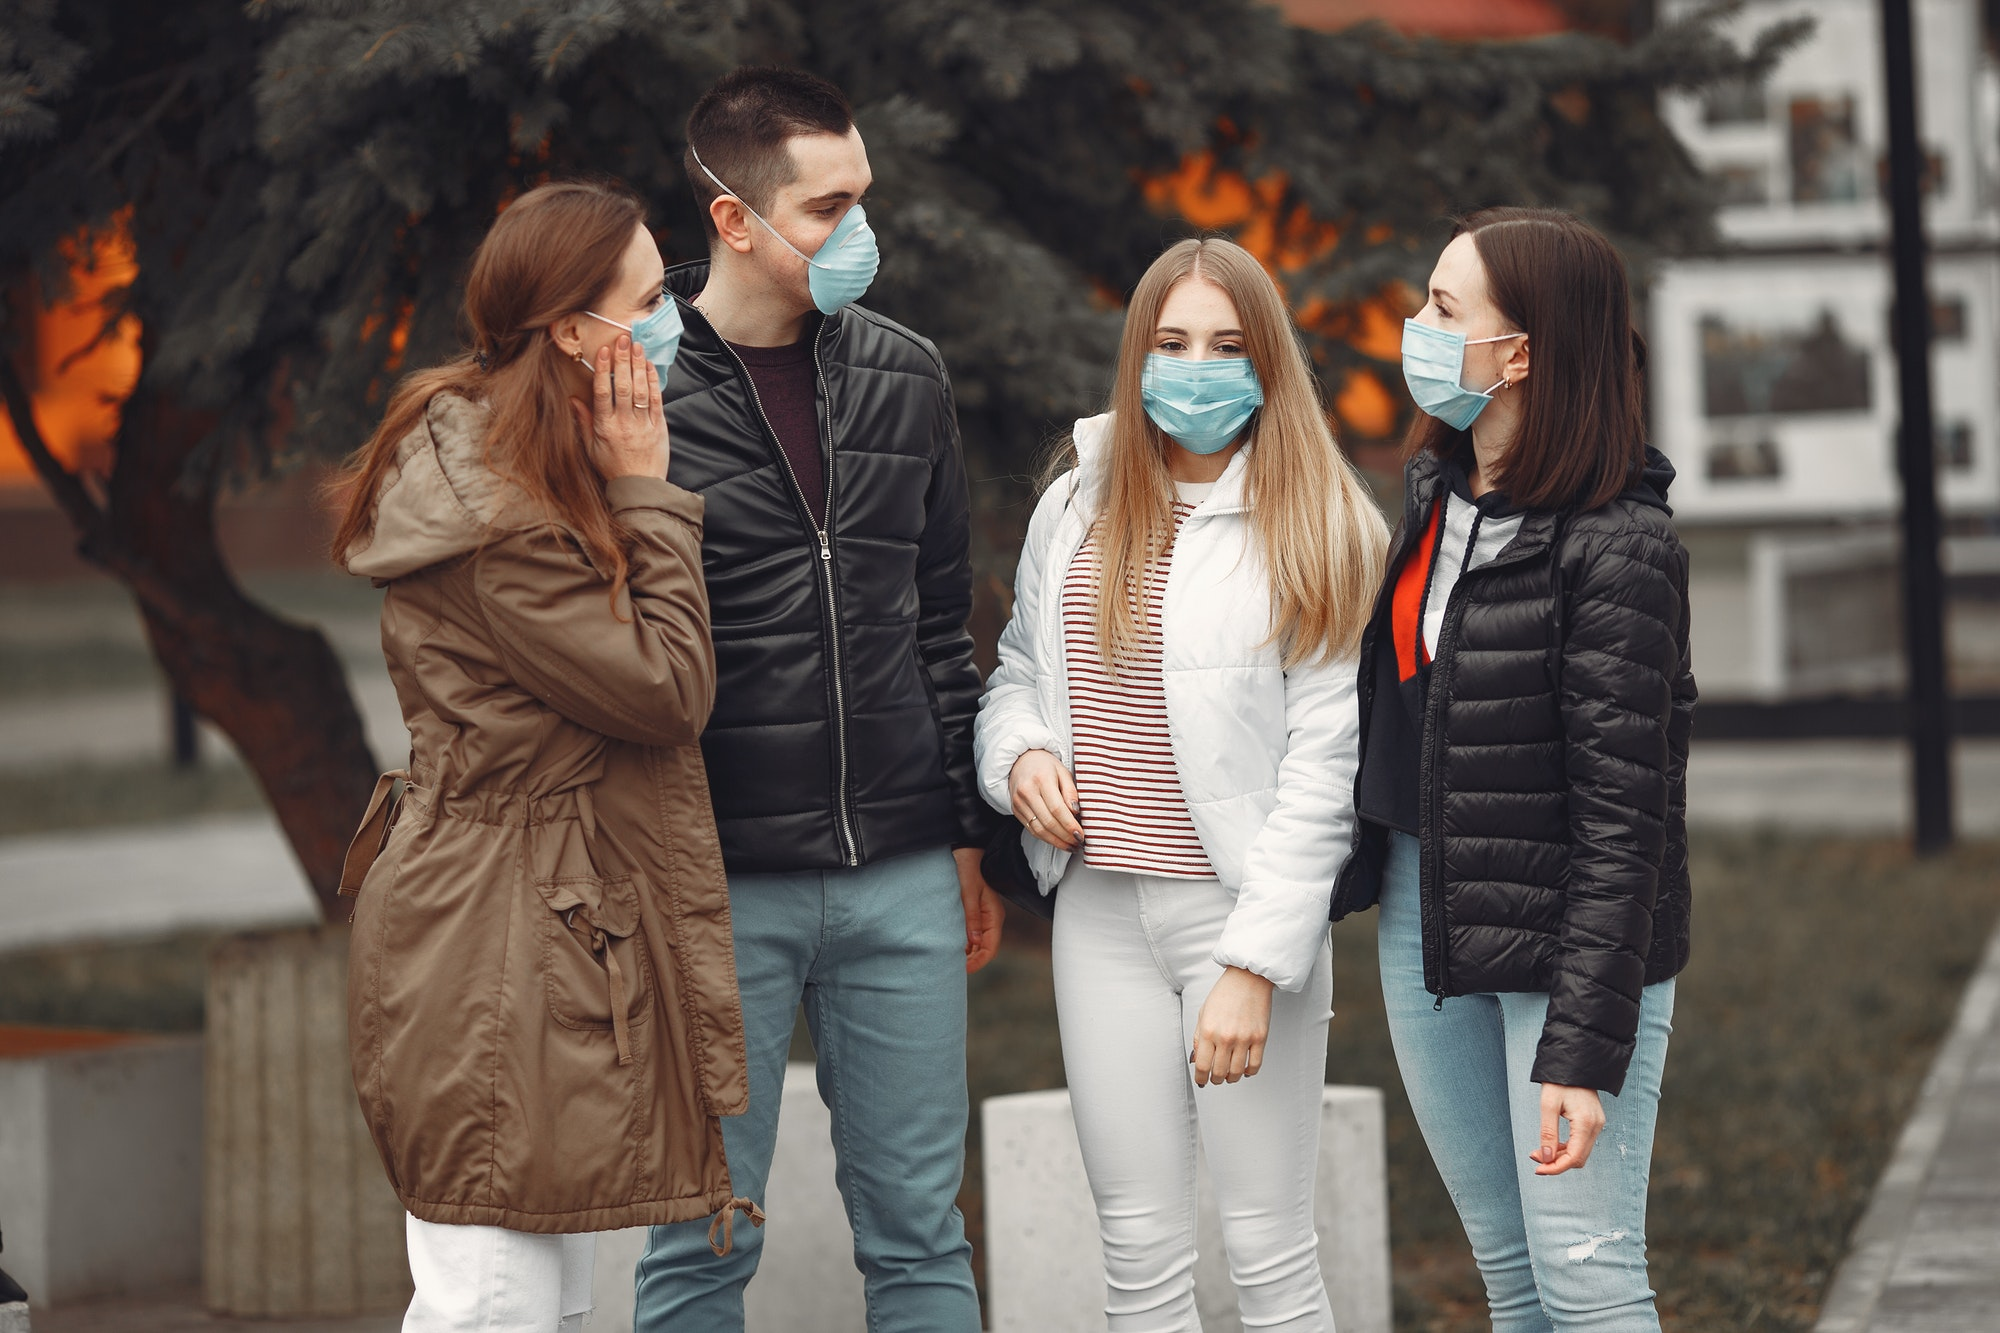 Young people are spreading disposable masks outside